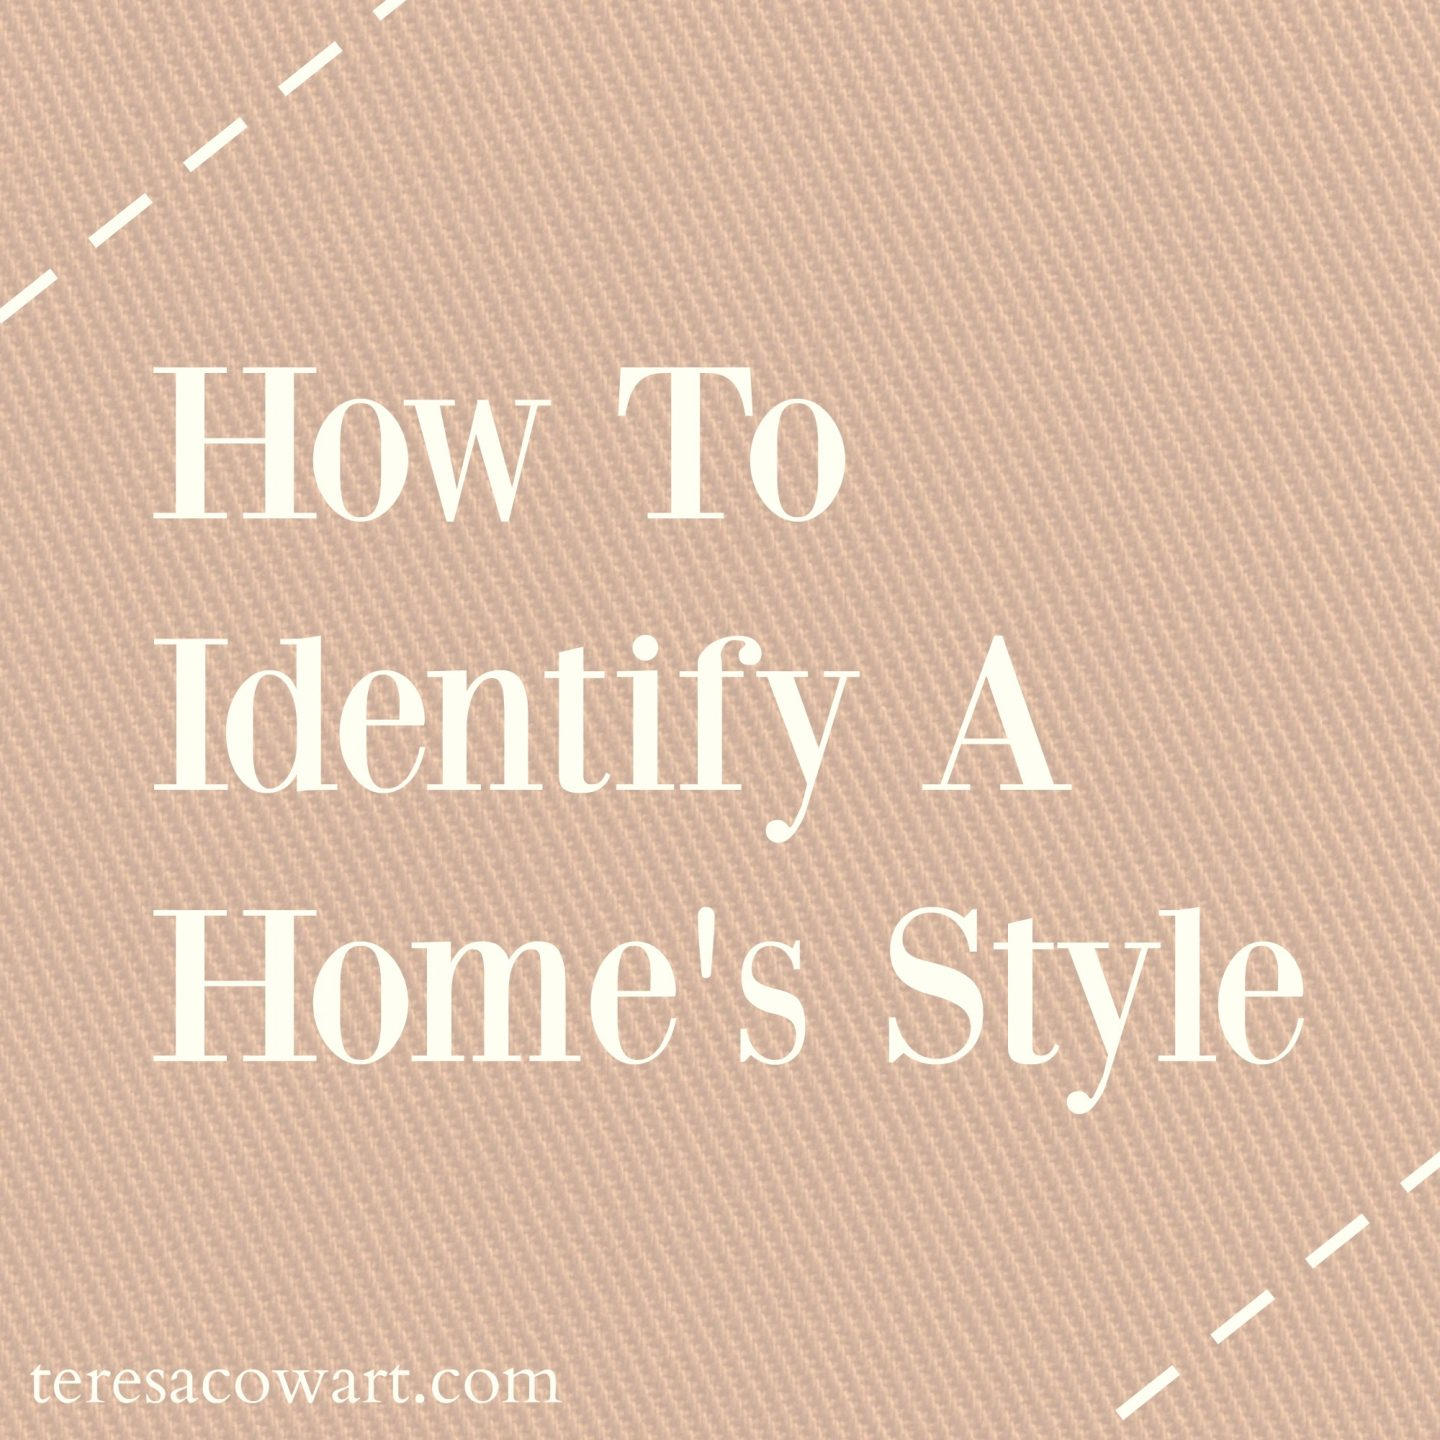 How to Identify Home Style